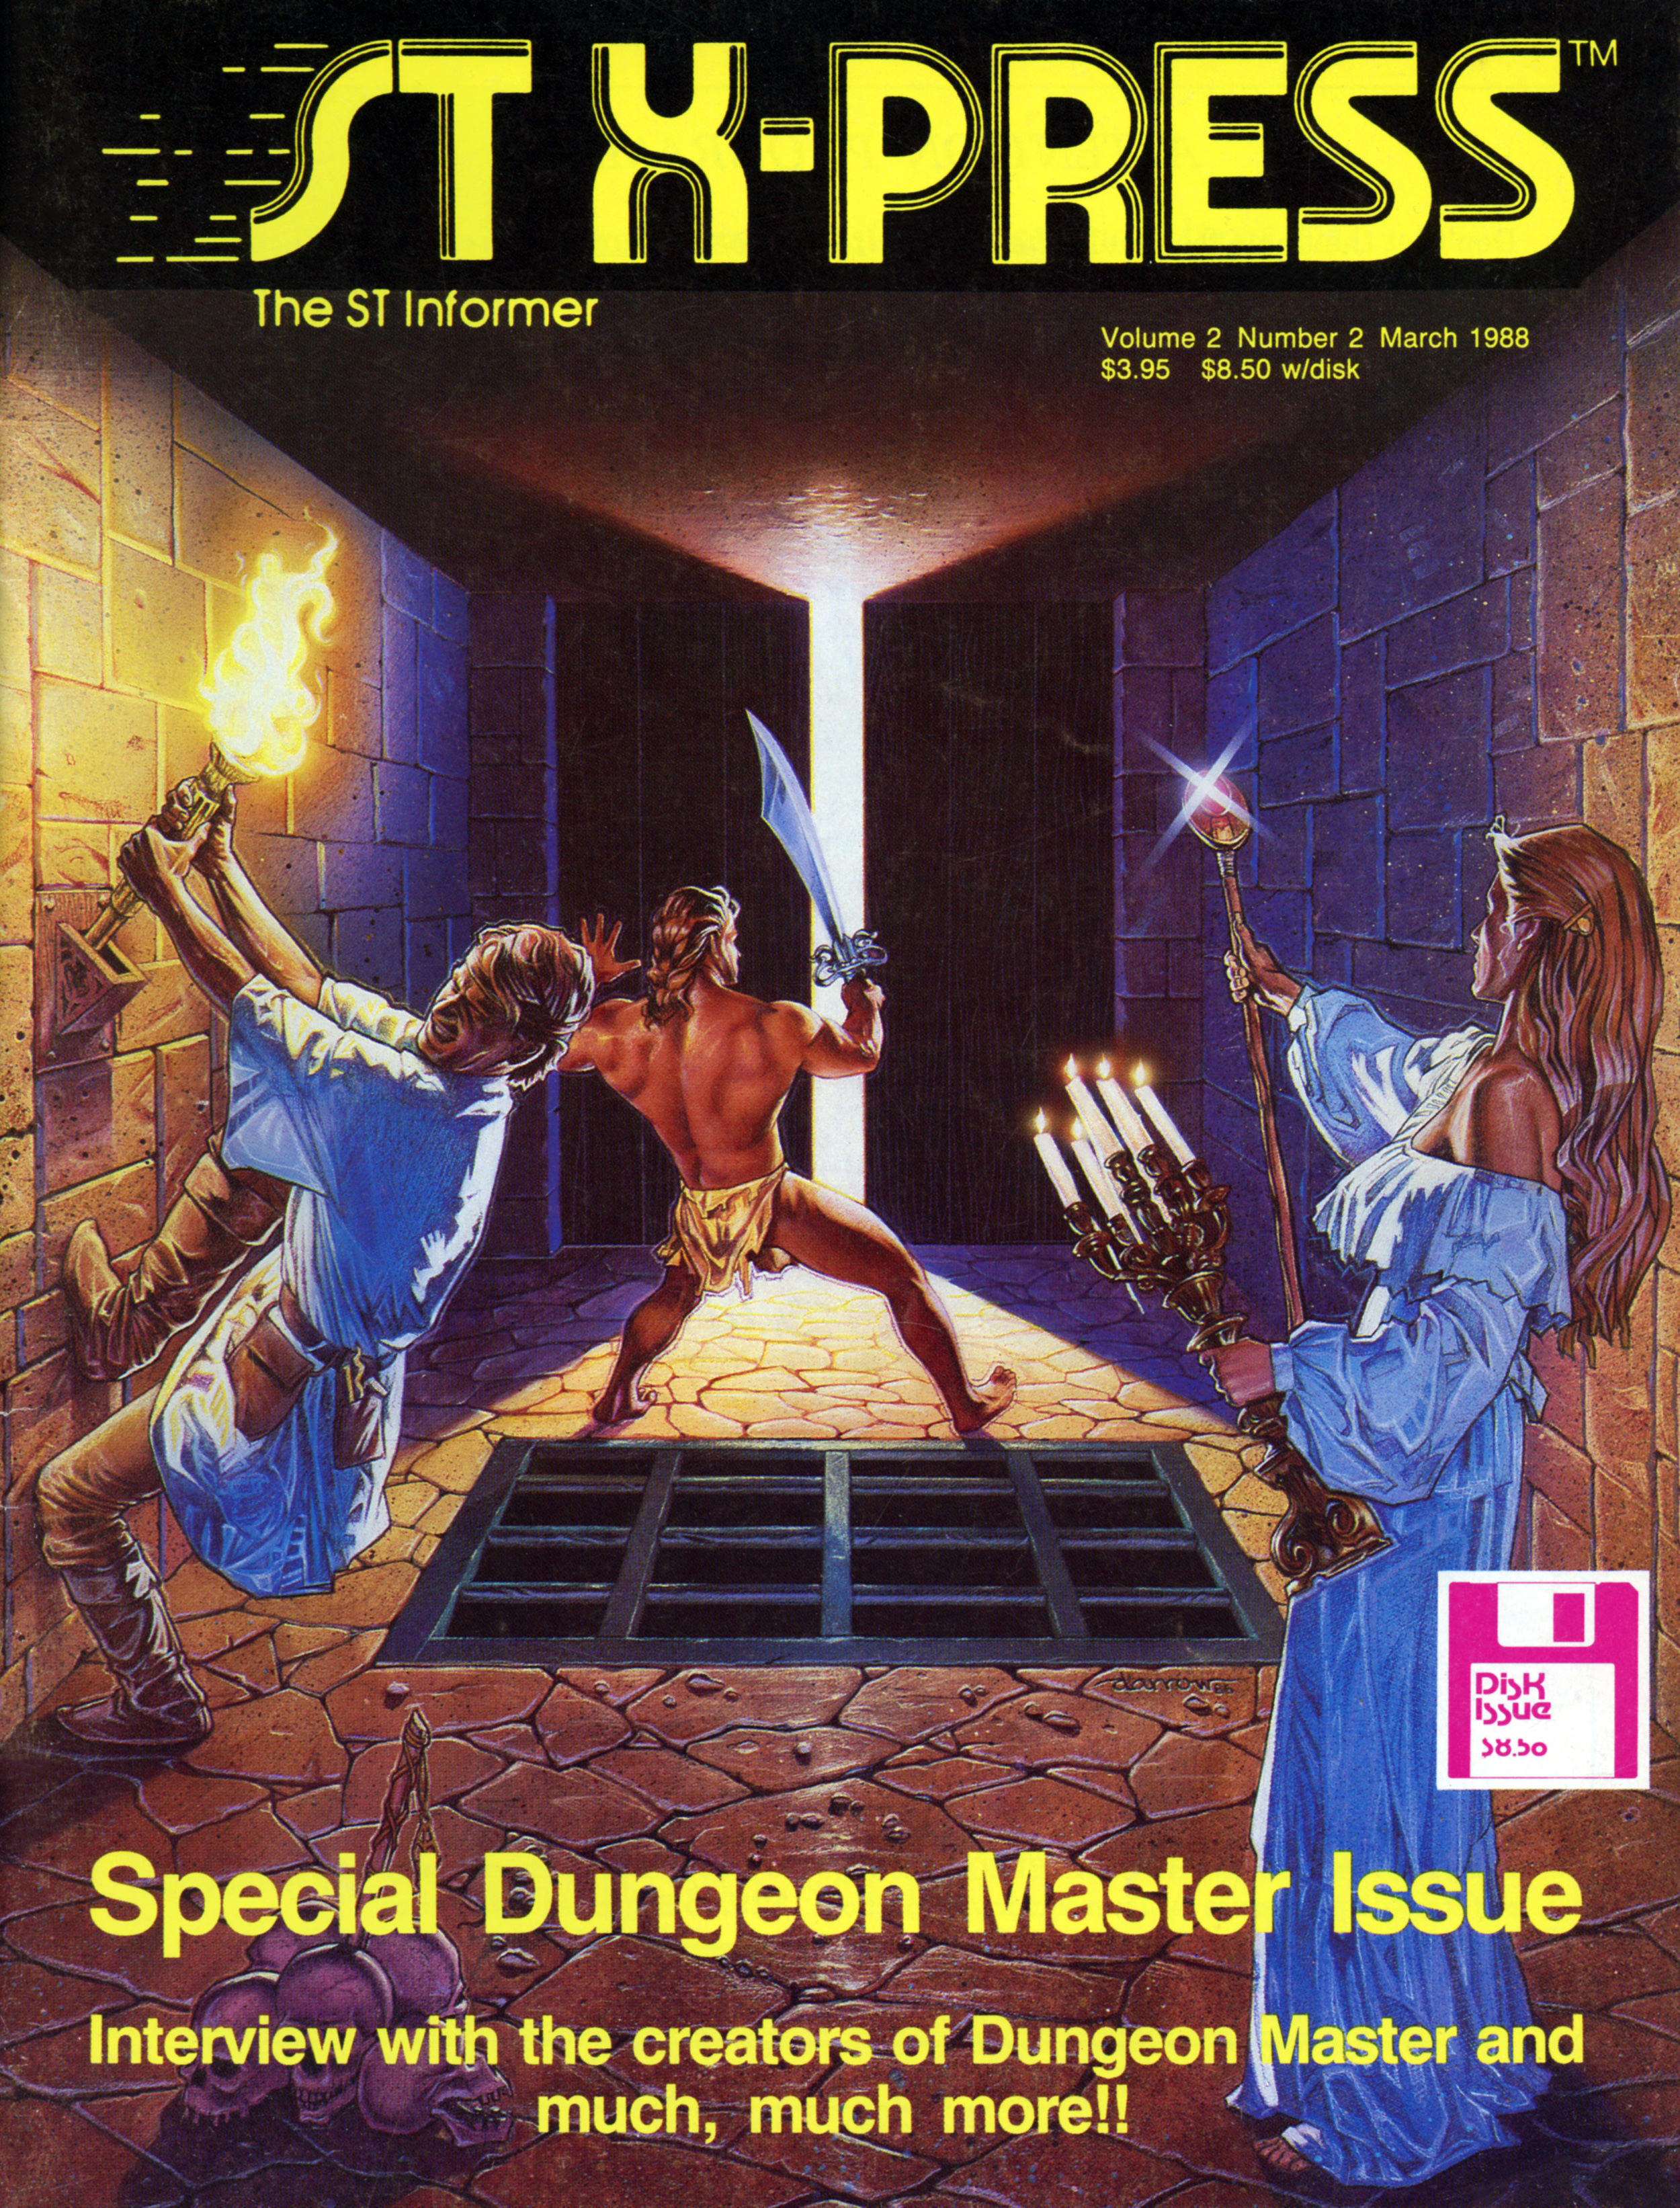 Dungeon Master for Atari ST Cover published in American magazine 'ST X-PRESS', Vol 2 No 2 March 1988